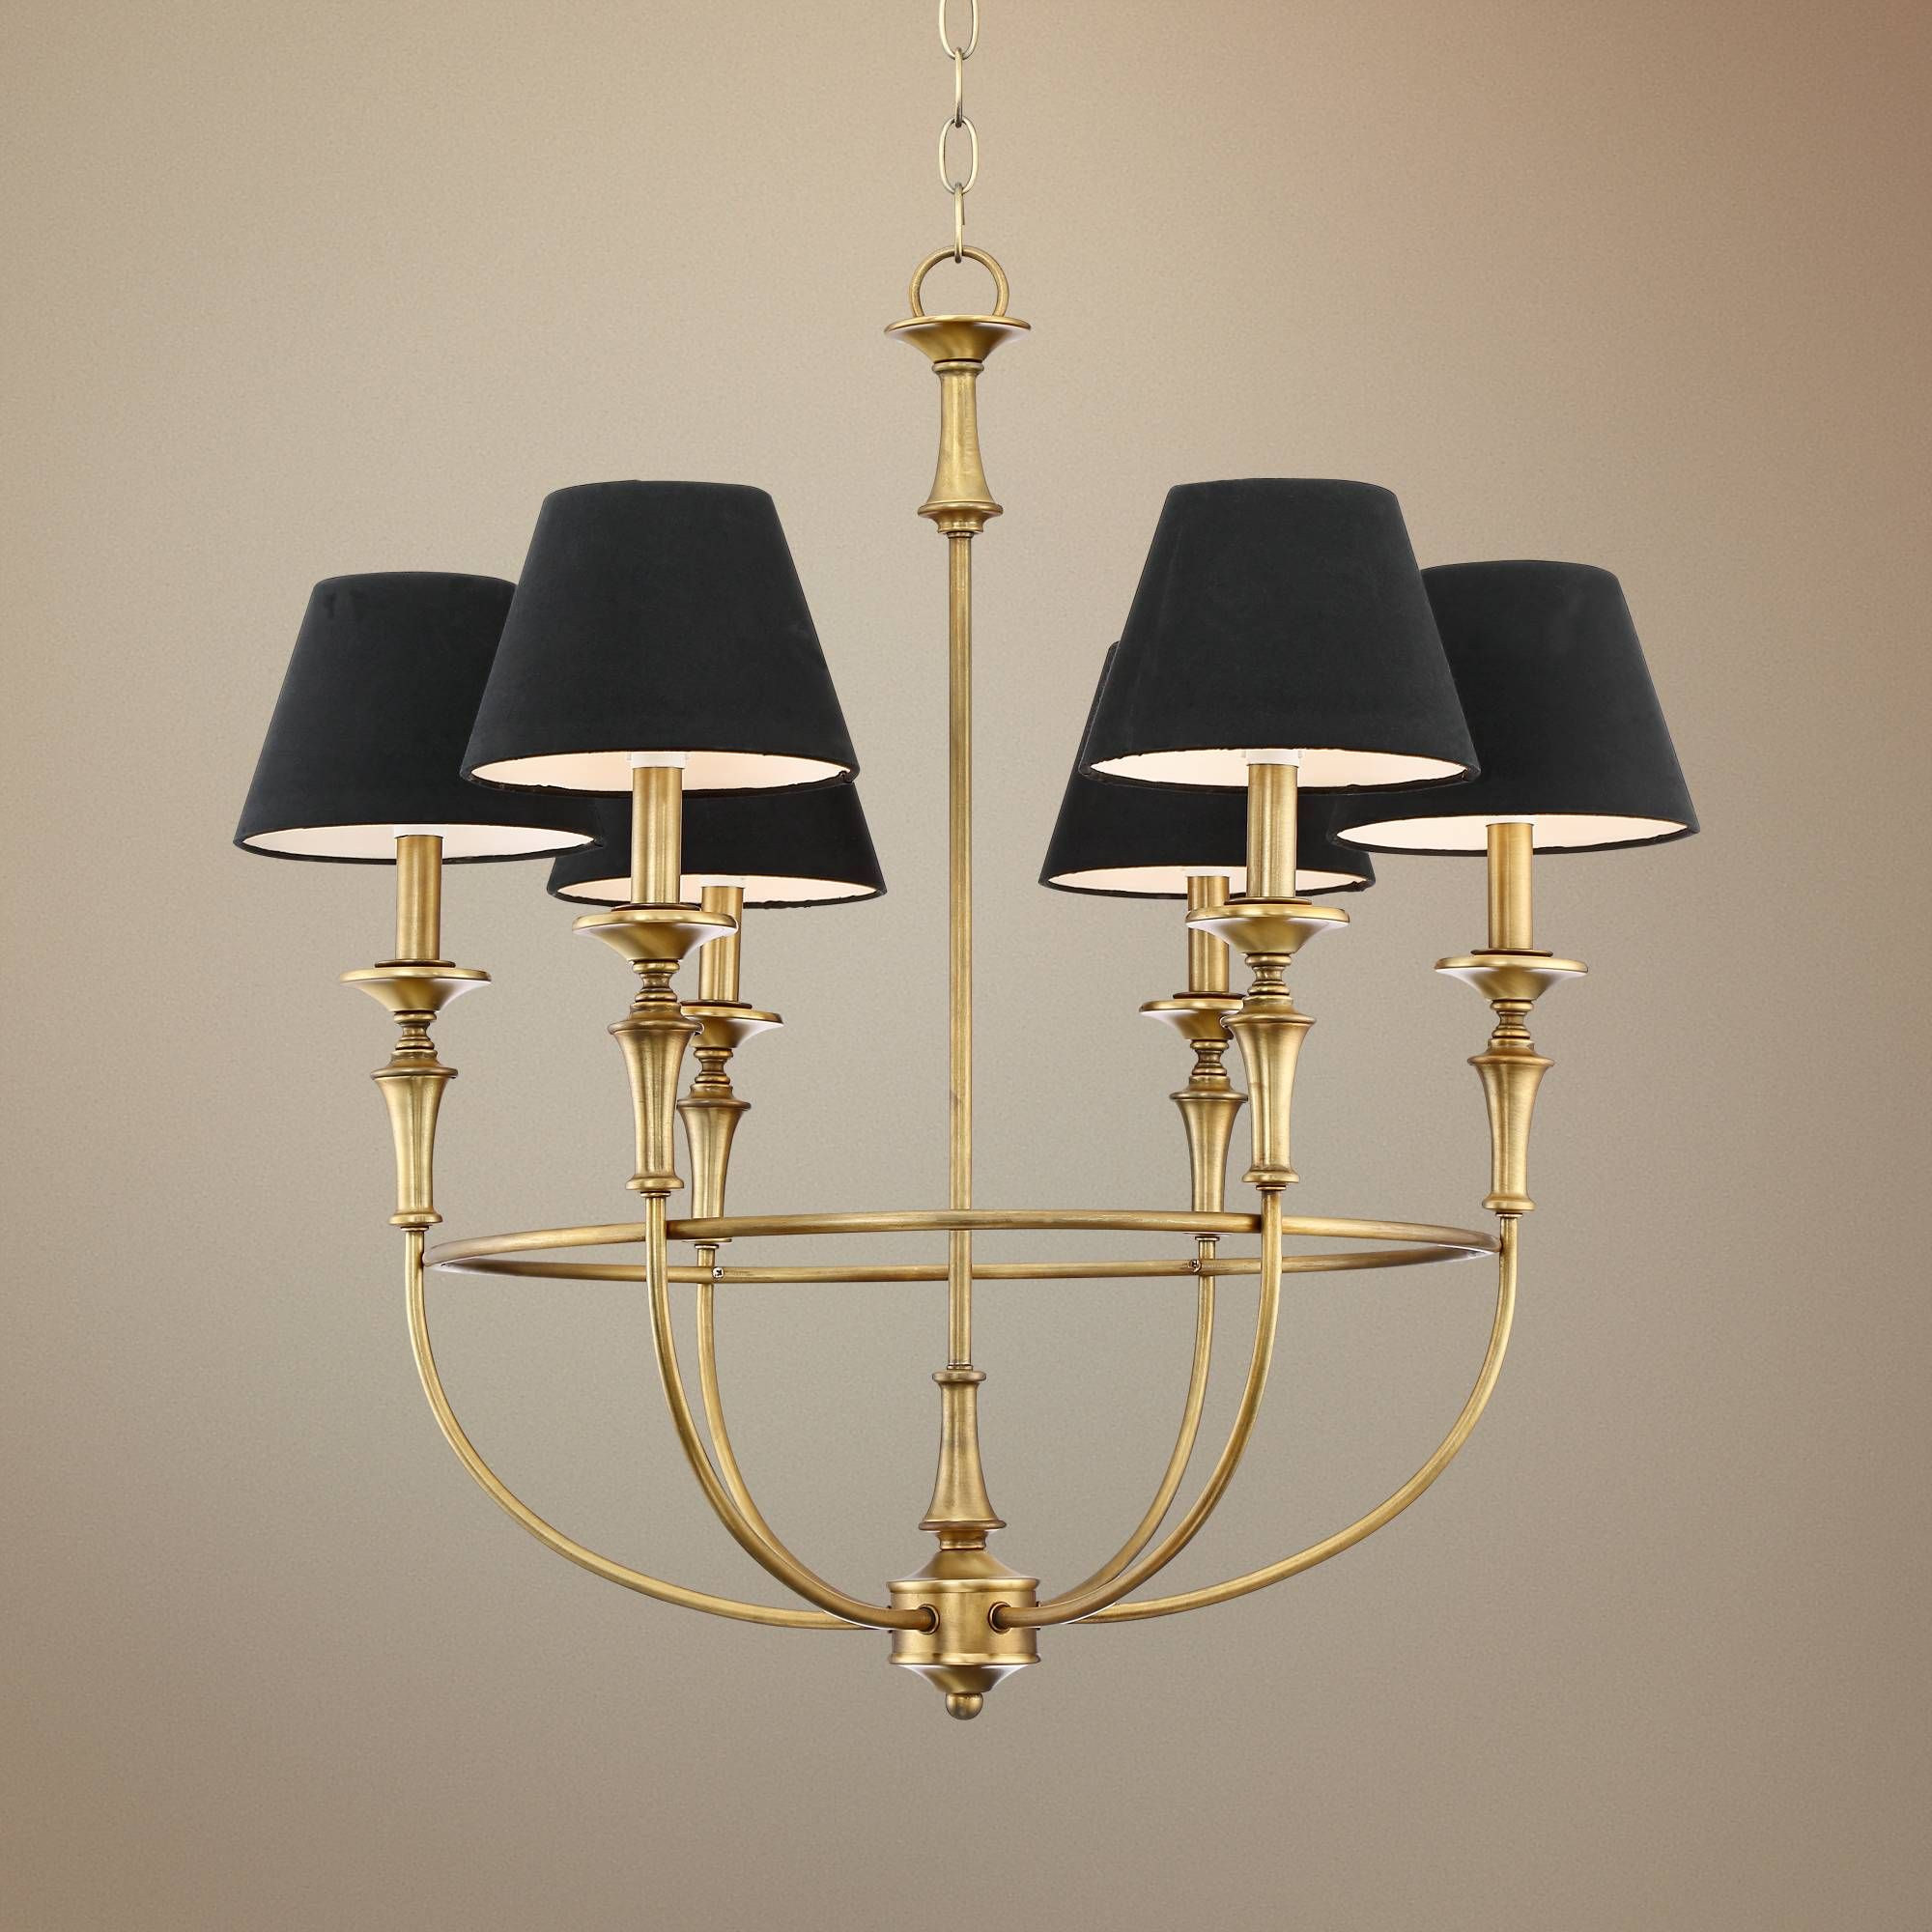 "Lufkin 28"" Wide Polished Brass 6 Light Chandelier 9H339"